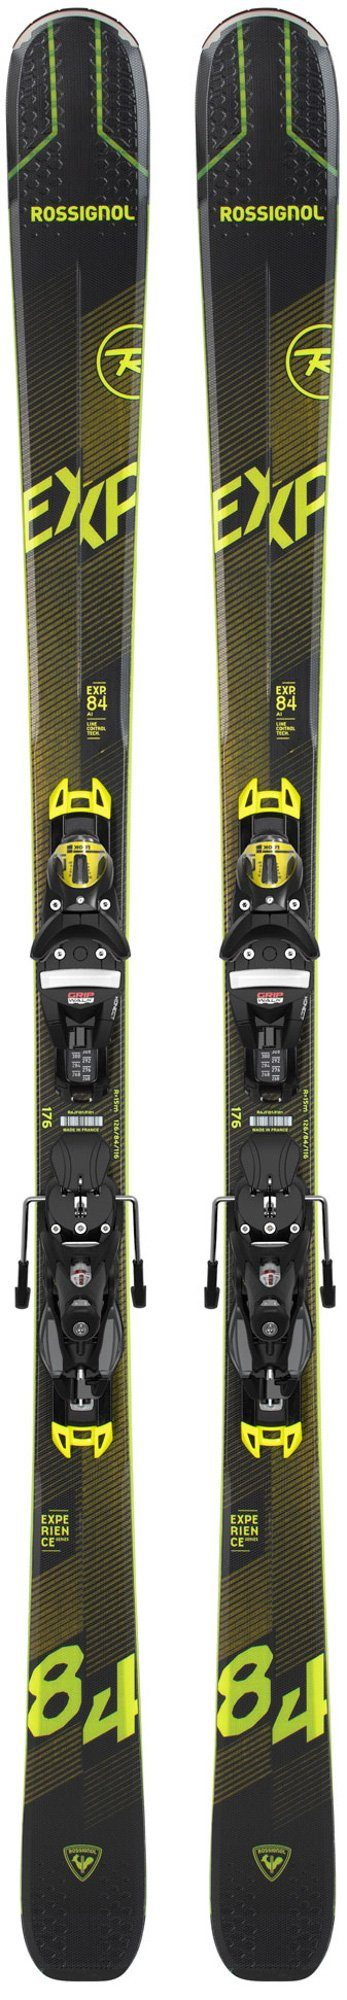 ROSSIGNOL MEN'S EXPERIENCE 84 AI SKI with SPX 12 KONECT GW B90 BINDINGS